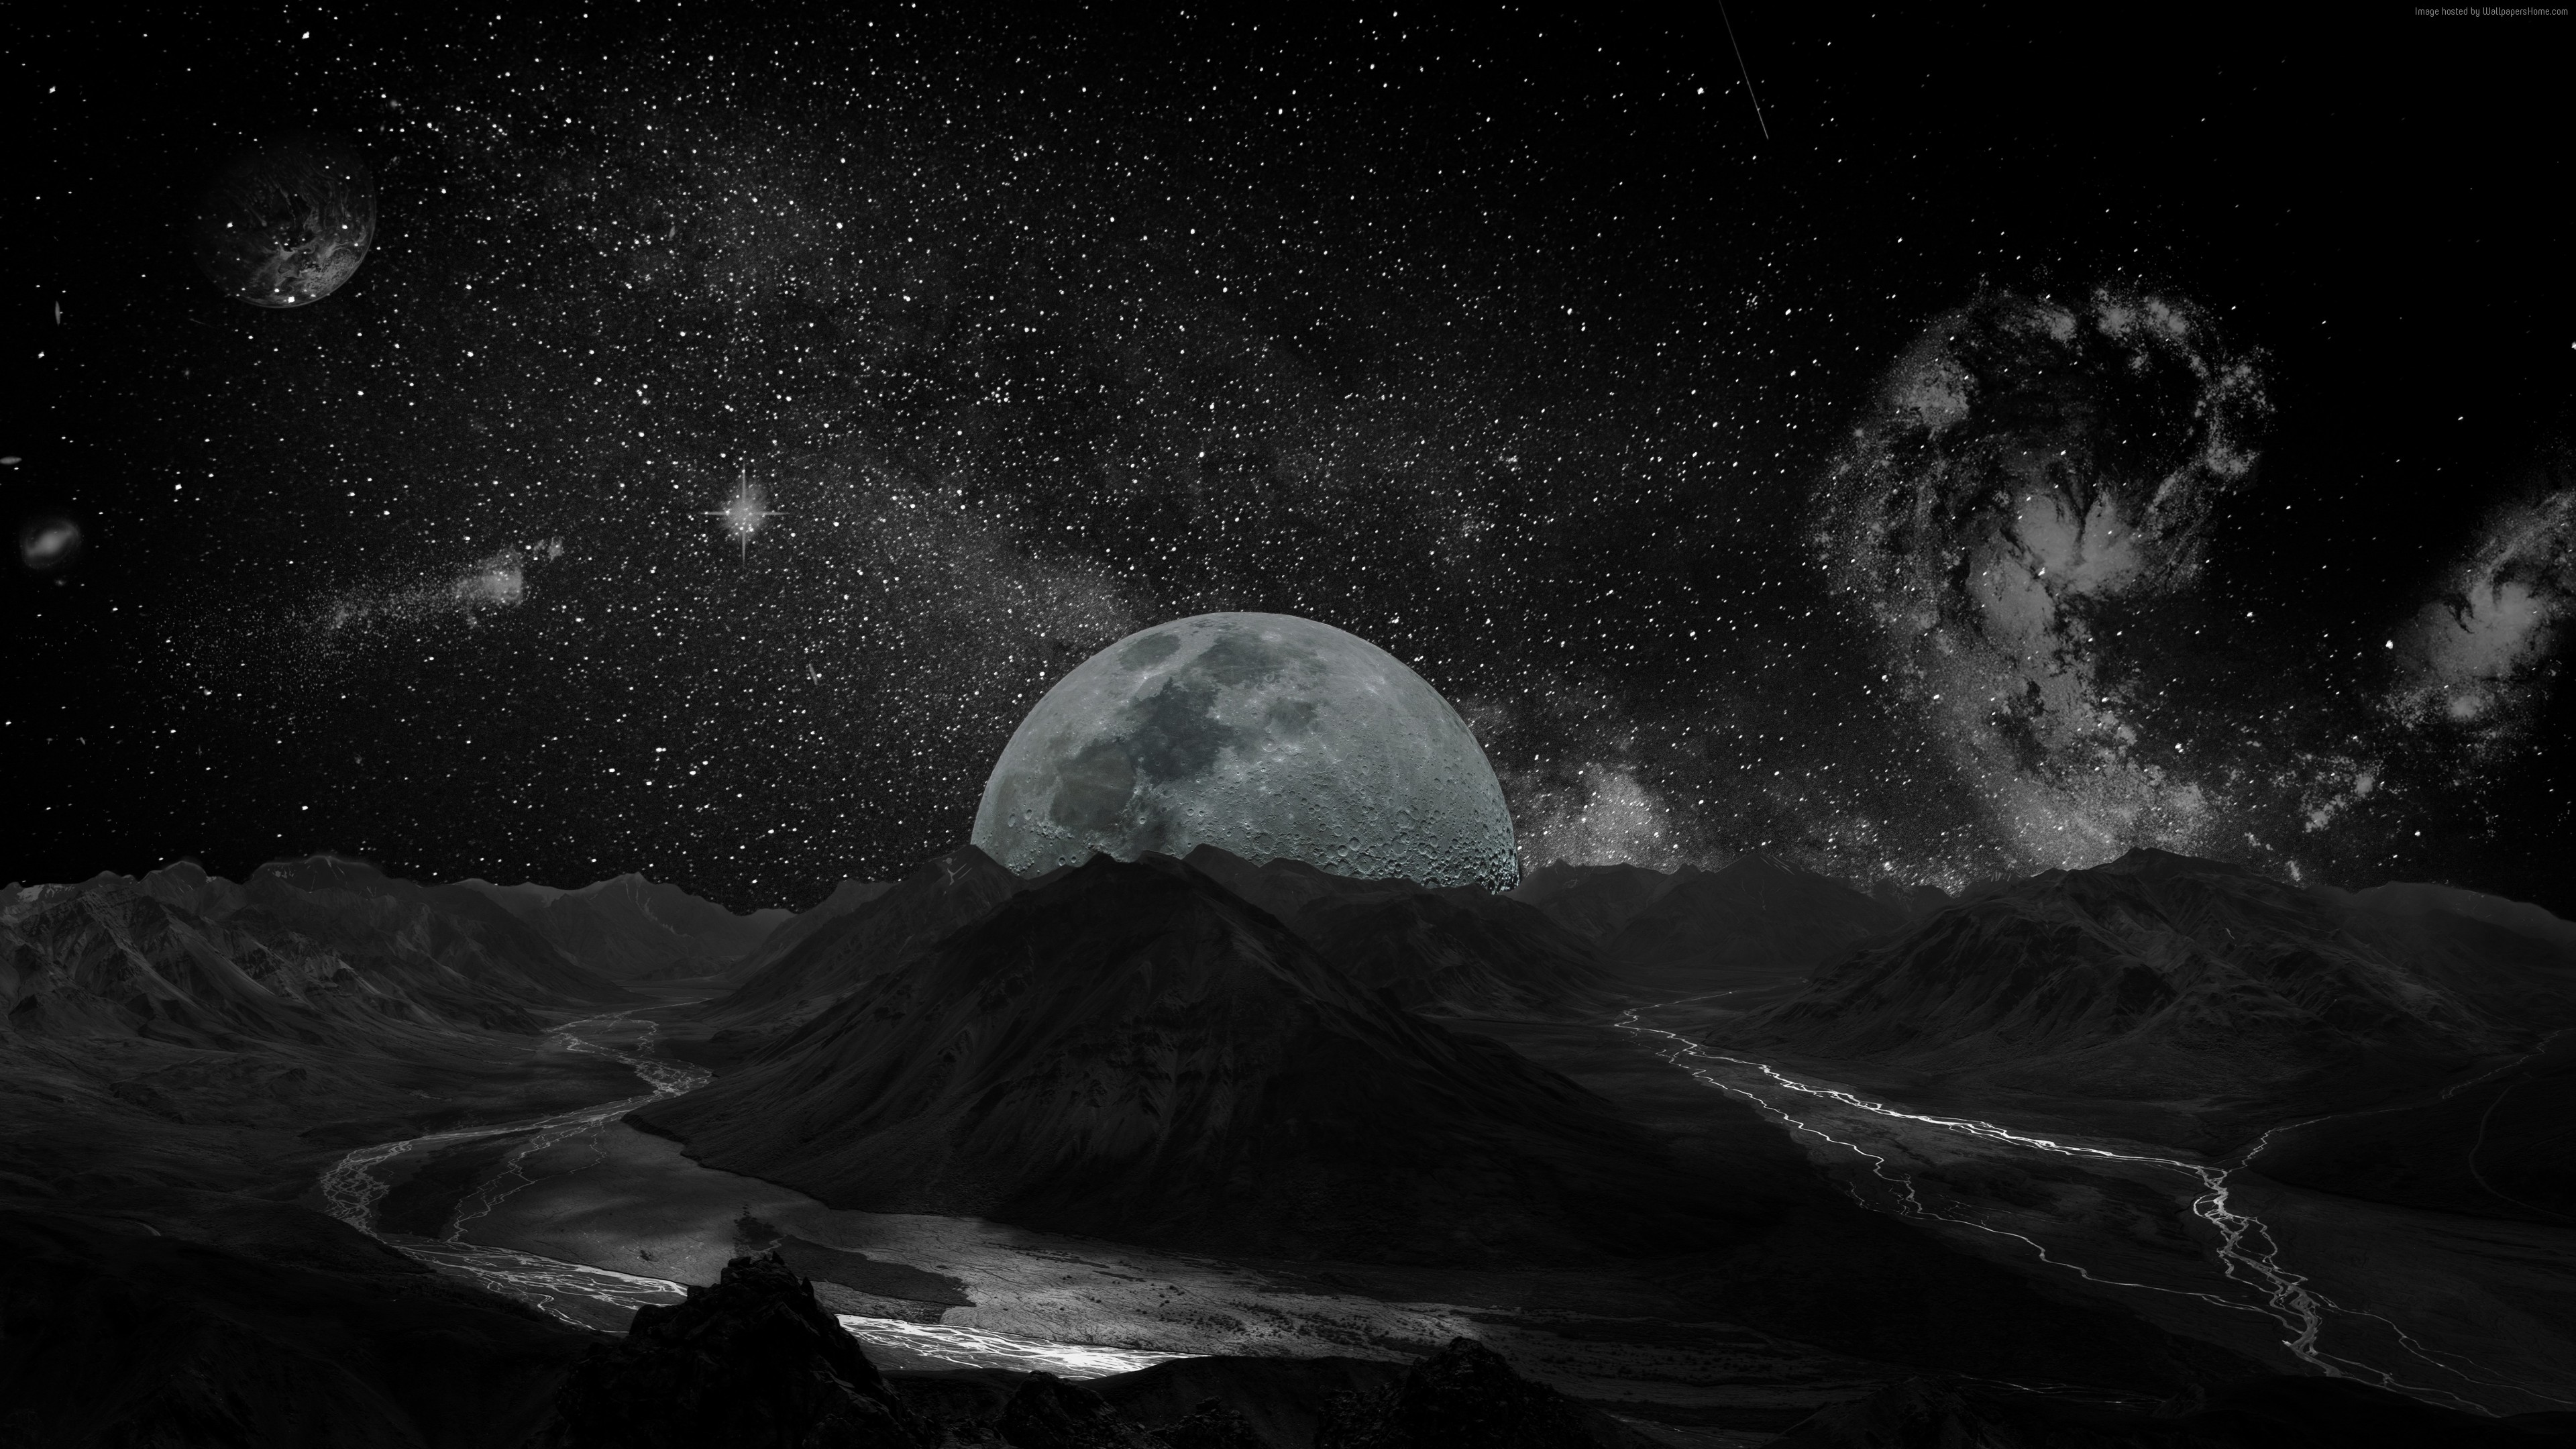 Wallpaper%20moon,%20planet,%20space,%20milky%20way,%205k,%20Space%207249116207